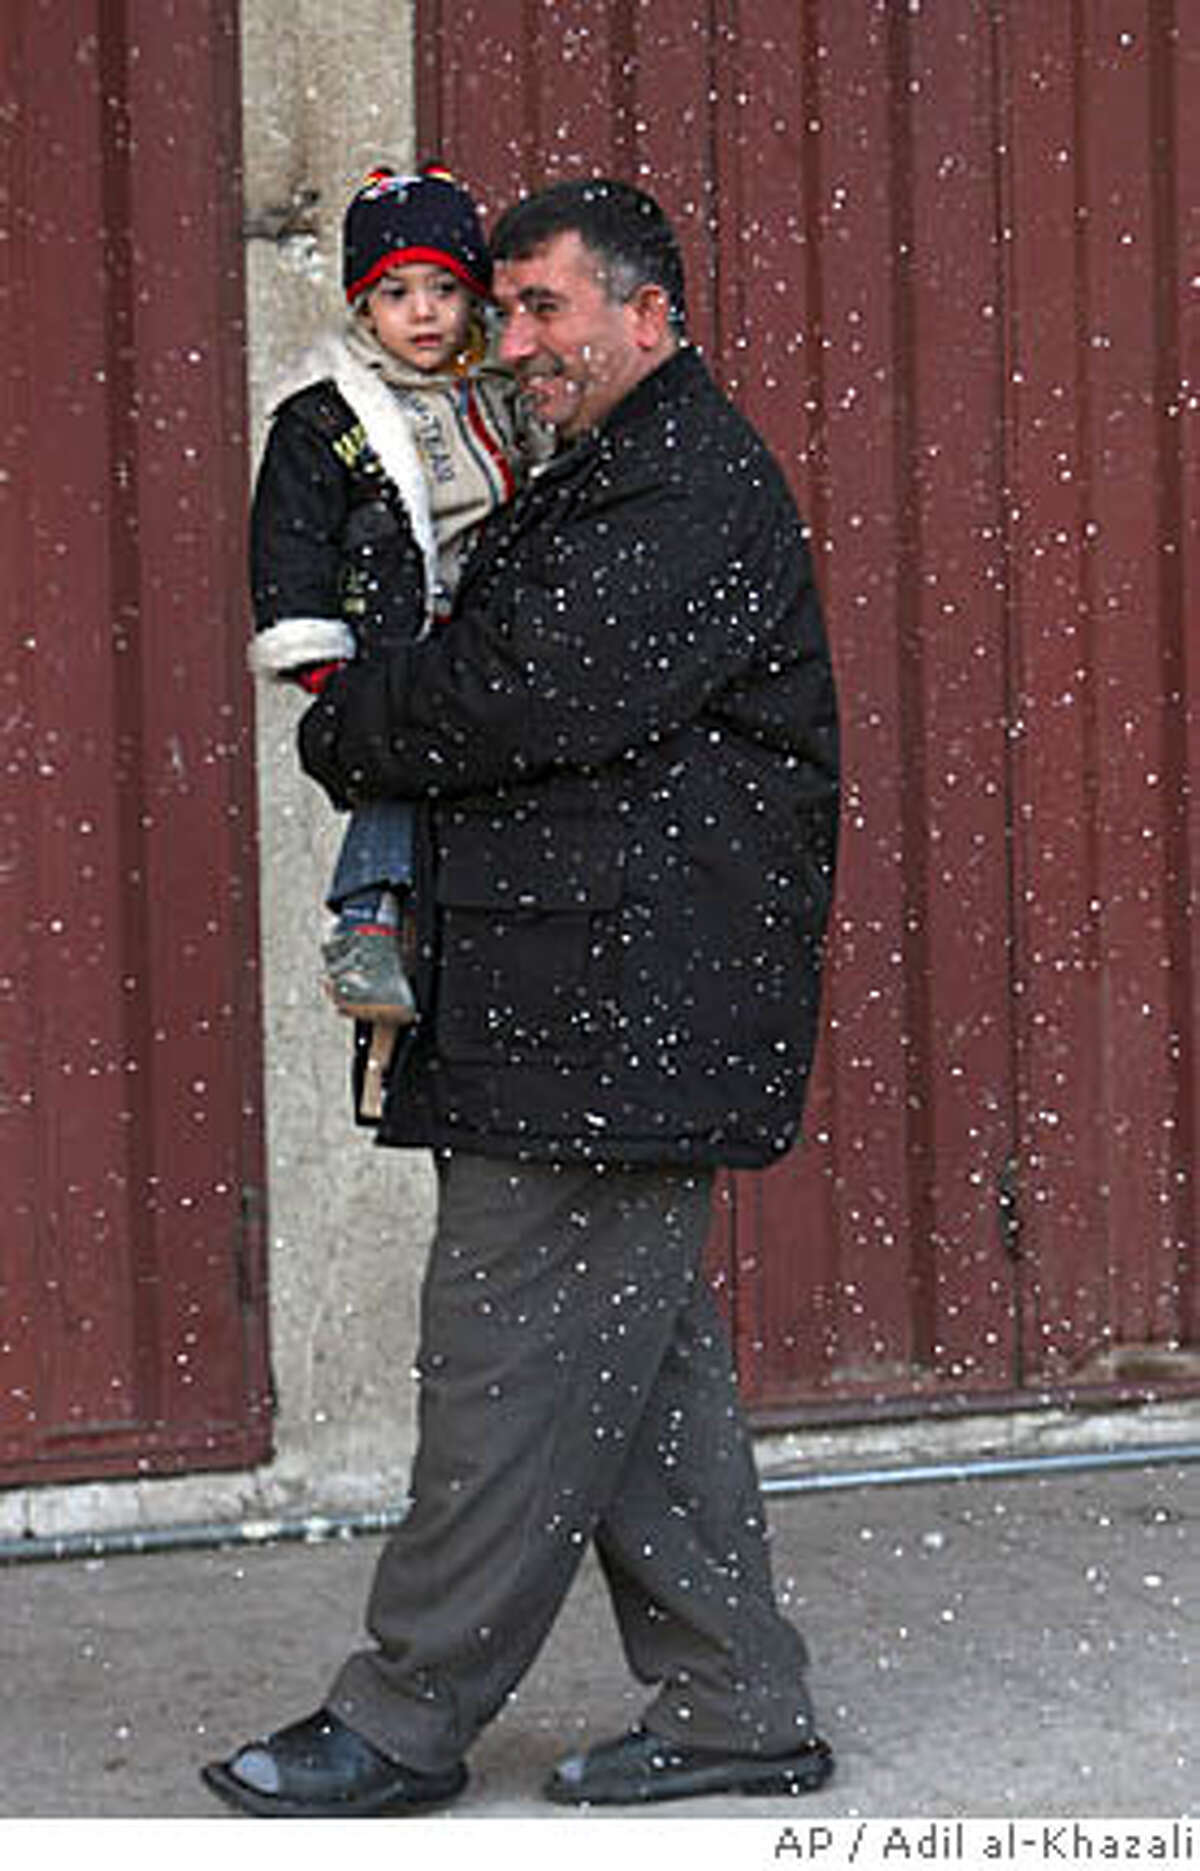 An Iraqi man and his child enjoy light snow fall in eastern Baghdad, Iraq on Friday, Jan. 11, 2008. After weathering nearly five years of war, Baghdad residents thought they'd pretty much seen it all. But Friday morning, as muezzins were calling the faithful to prayer, the people here awoke to something certifiably new. For the first time in memory, snow fell across Baghdad.(AP Photo/ Adil al-Khazali)